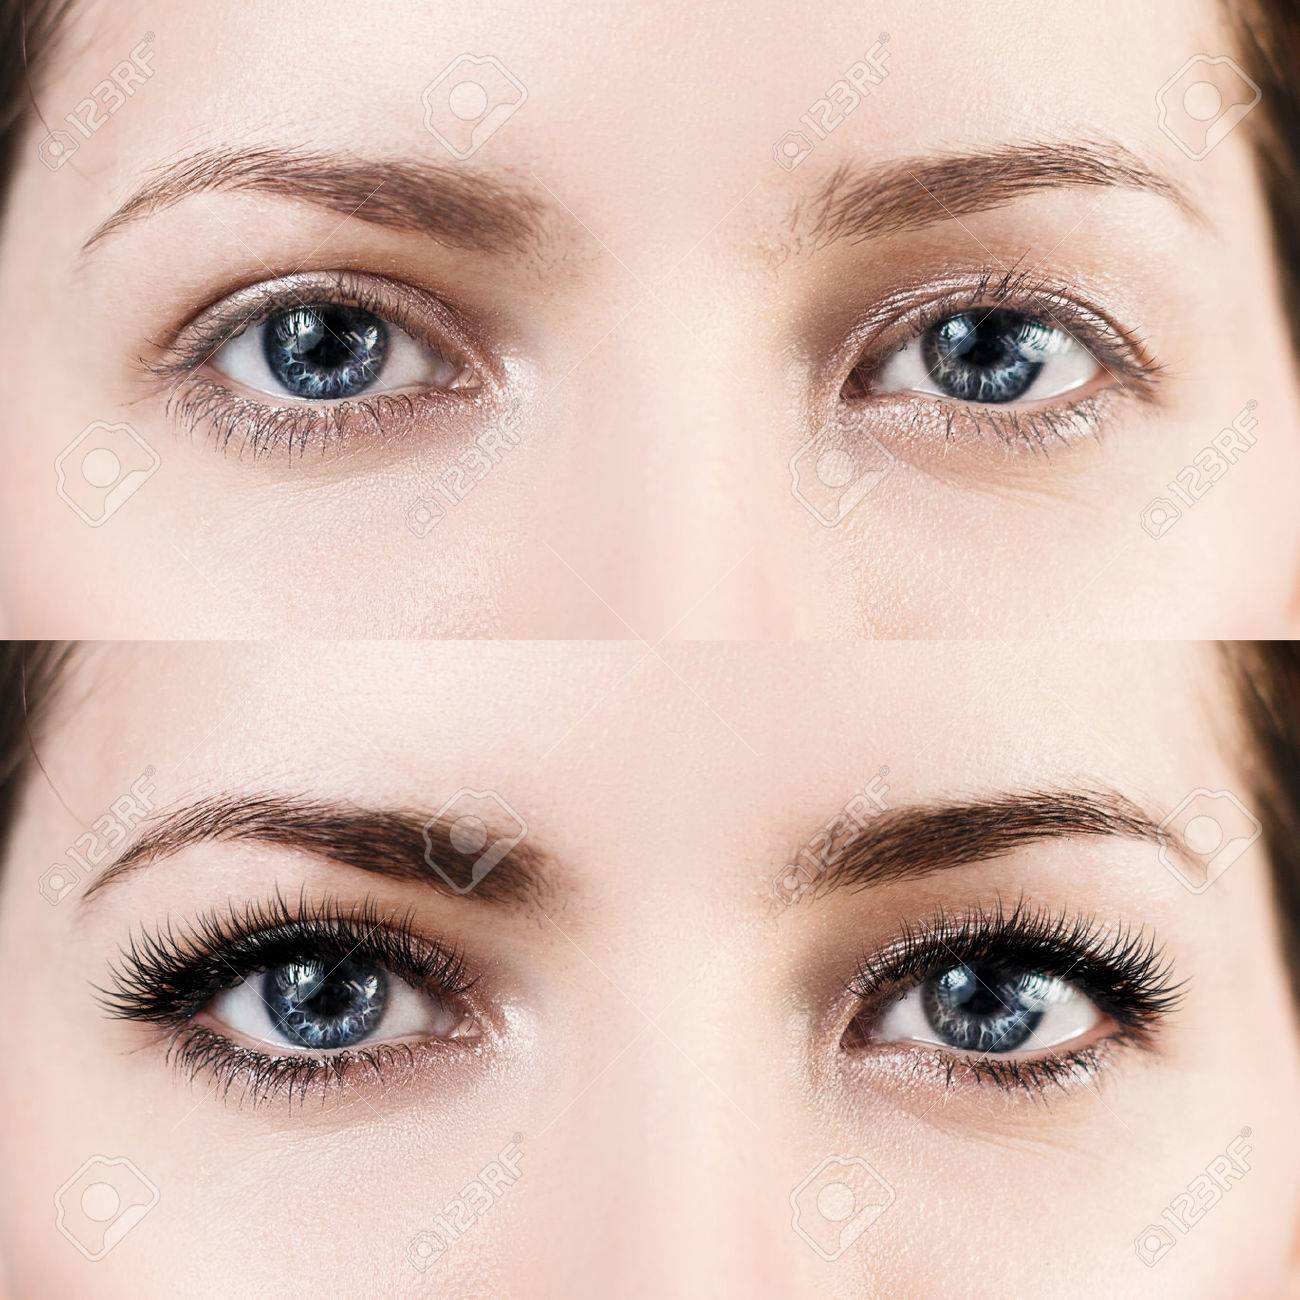 Female eyes before and after eyelash extension. - 71740691